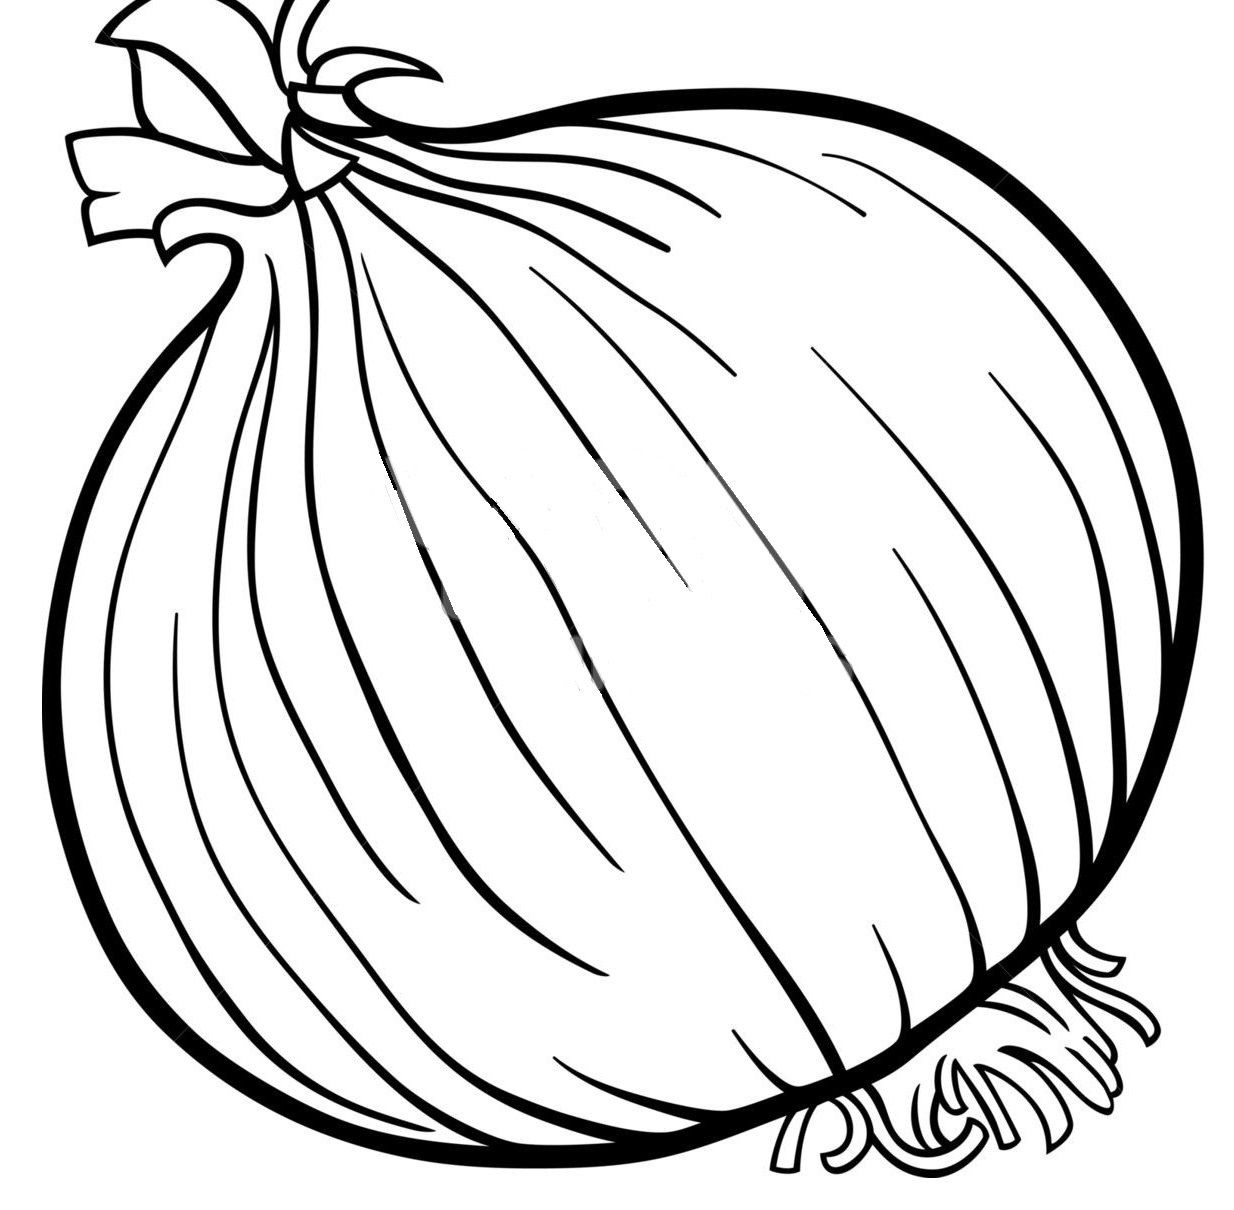 Pin By Velora Carmack On Speech Therapy Vegetable Coloring Pages